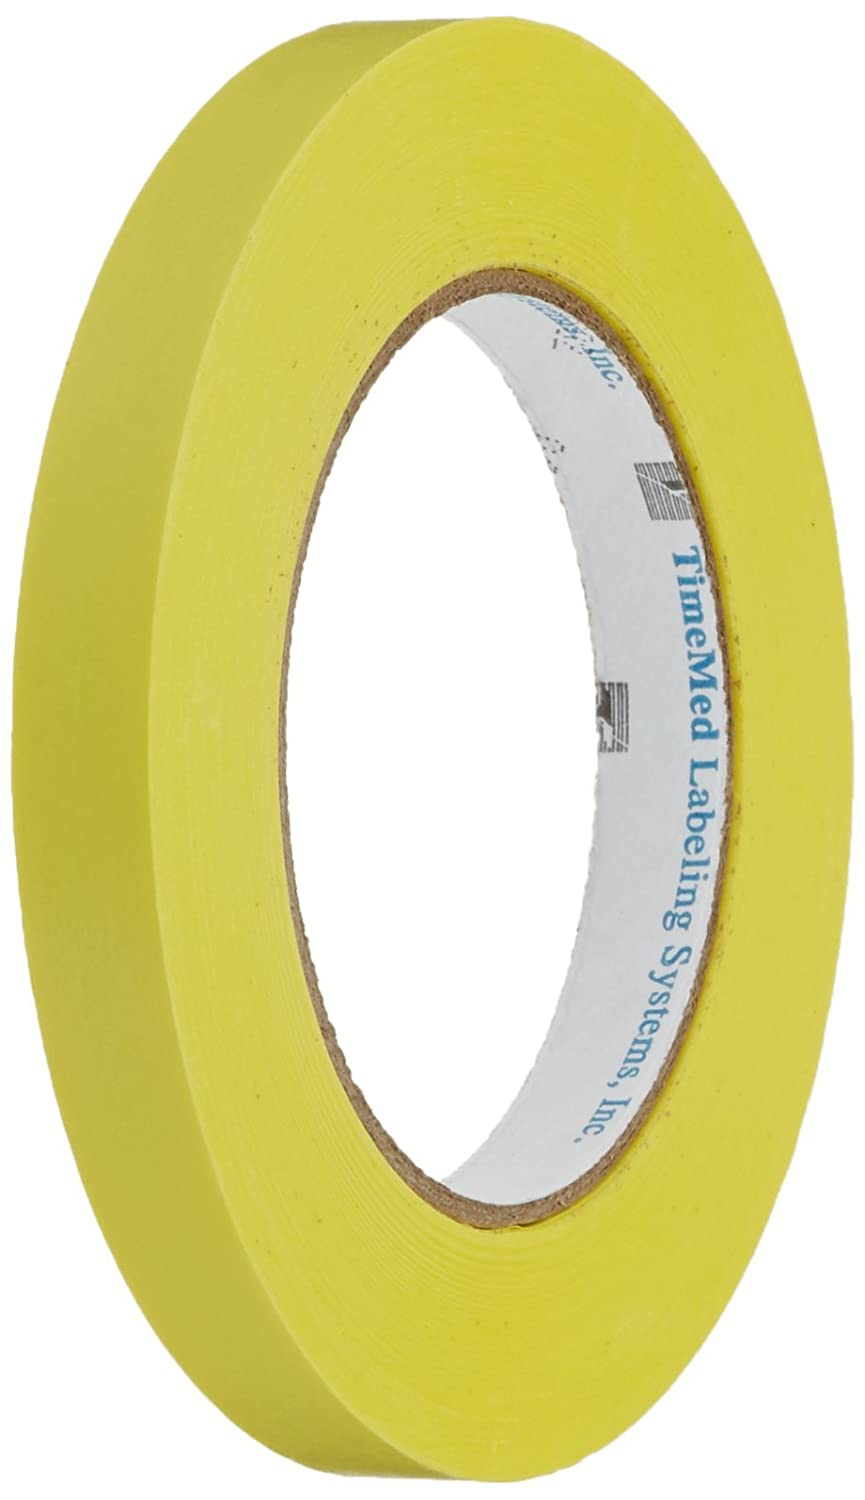 Neolab/2 6121 Labelling Tape 13 mm Width, 55 m Length, Yellow 55m Length 2-6121